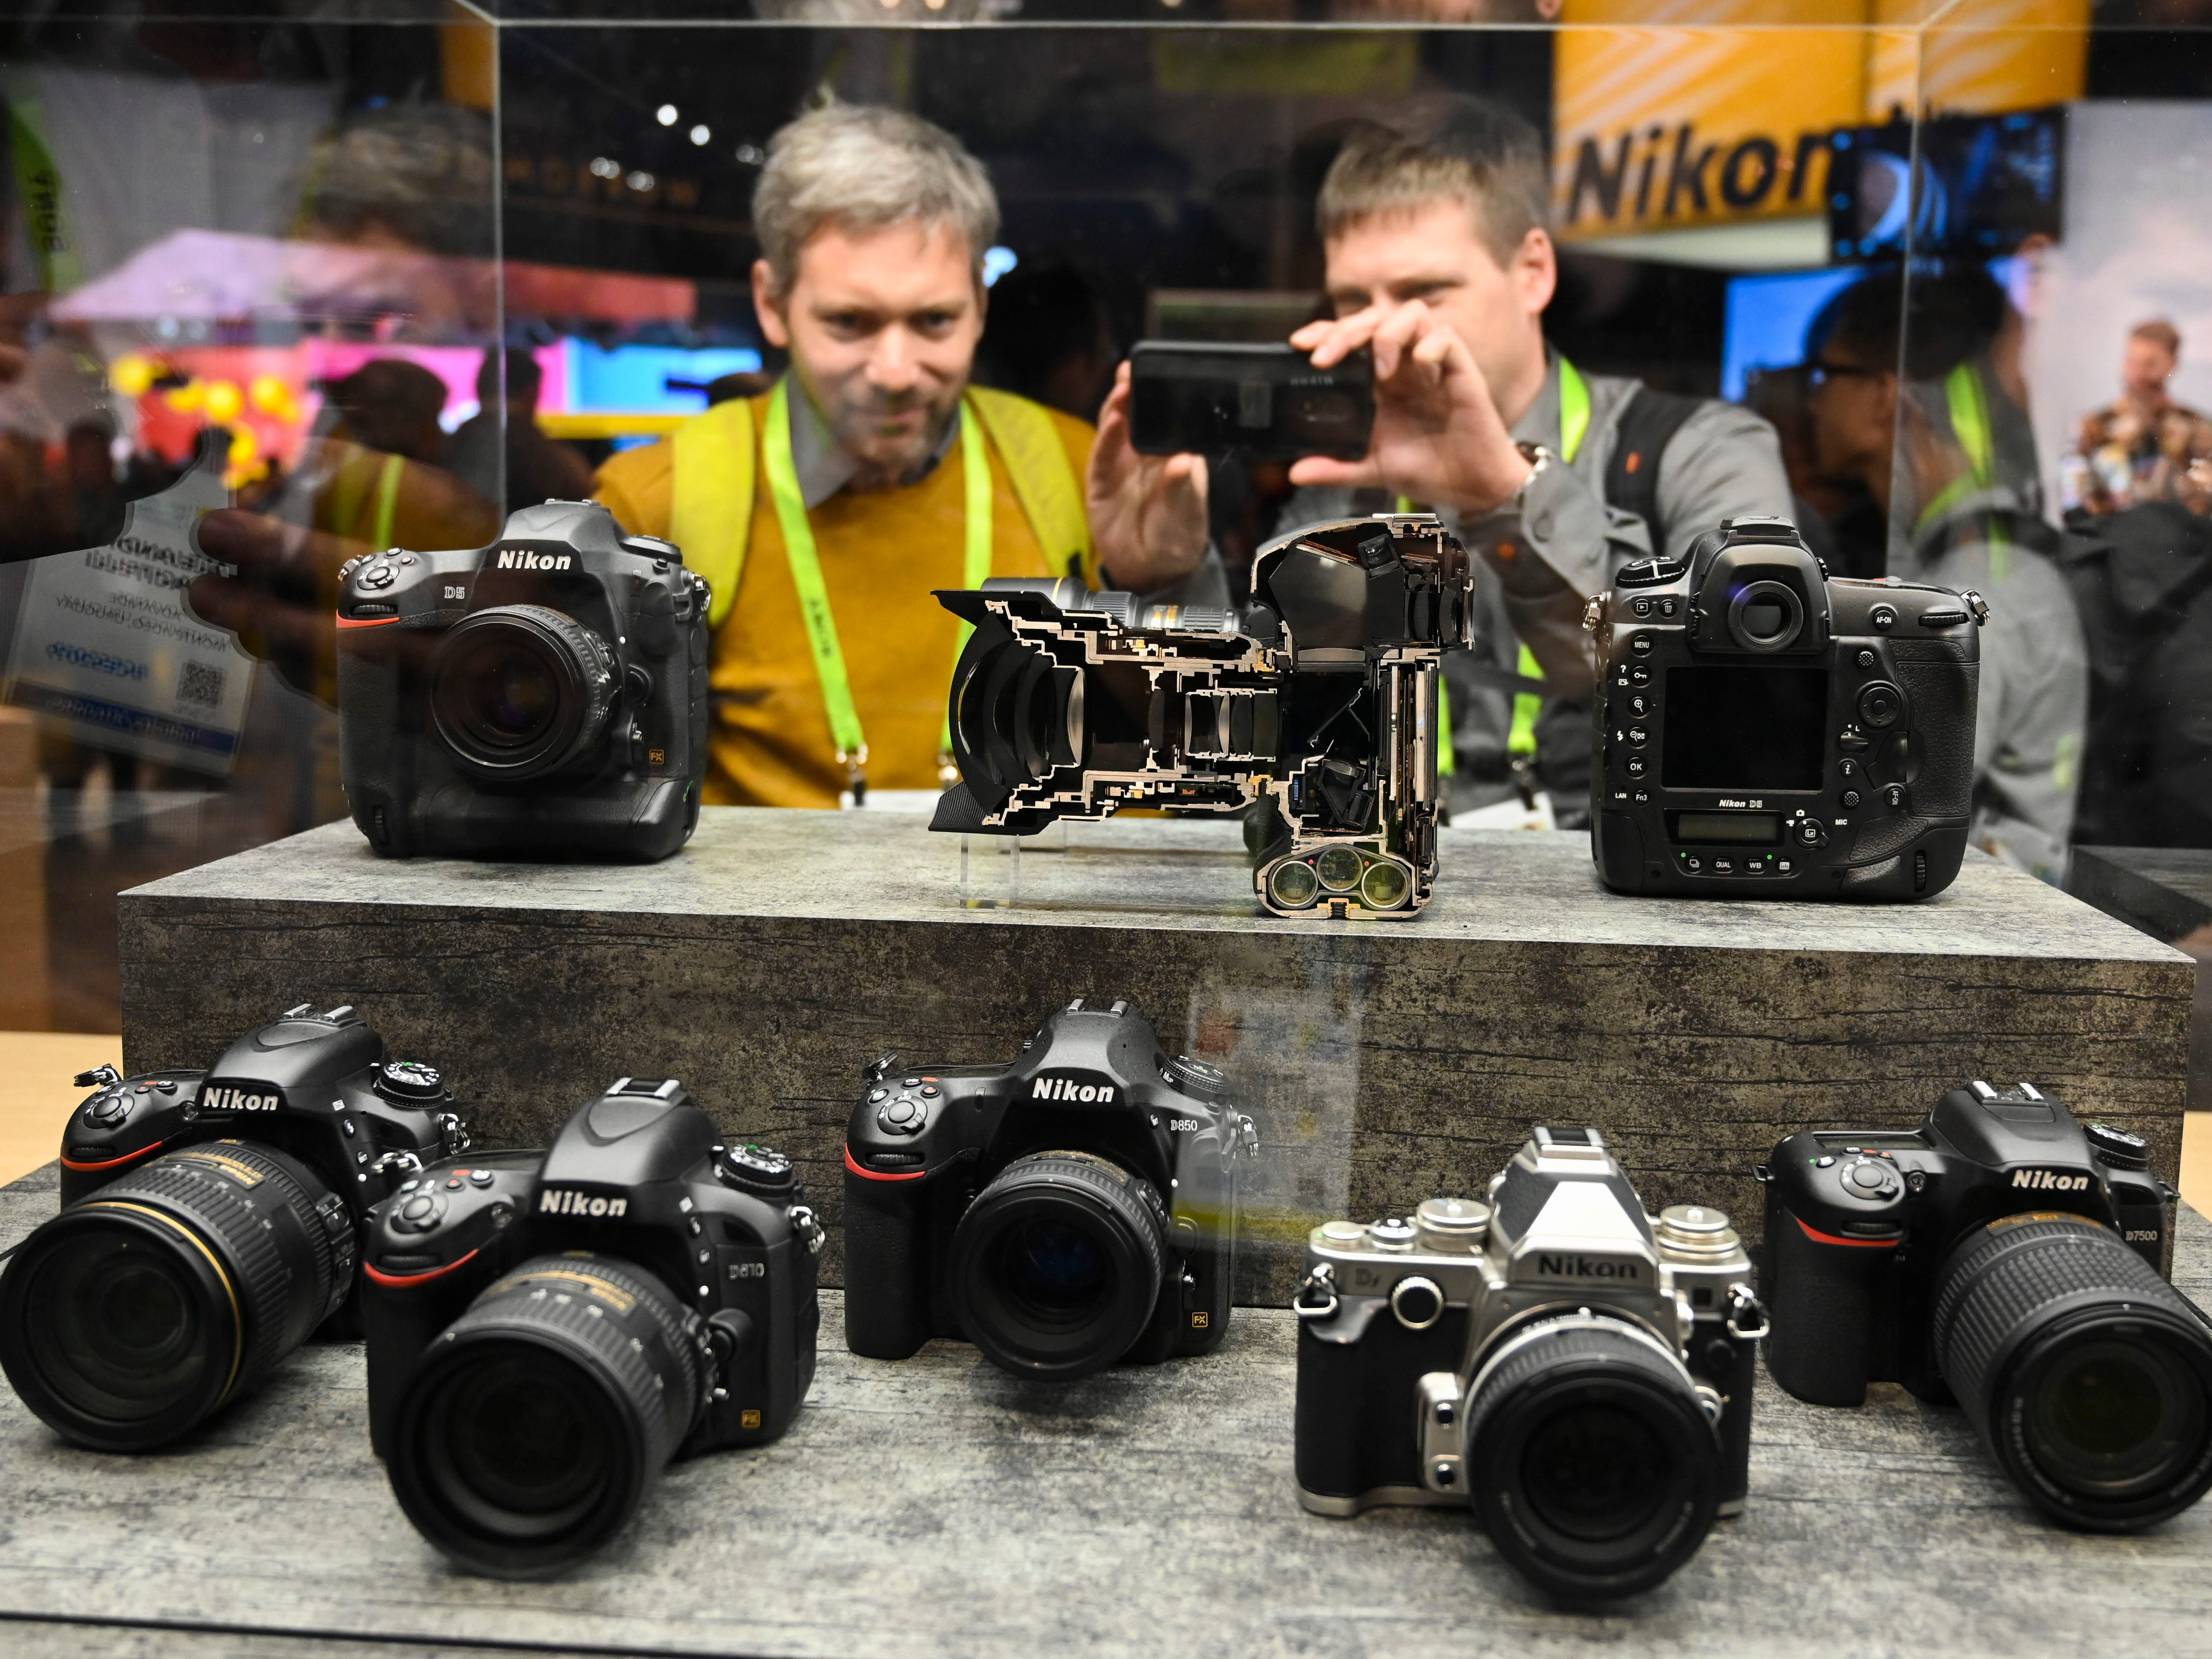 An attendee at CES 2019 takes a snapshot of digital cameras and lenses at the Nikon display.